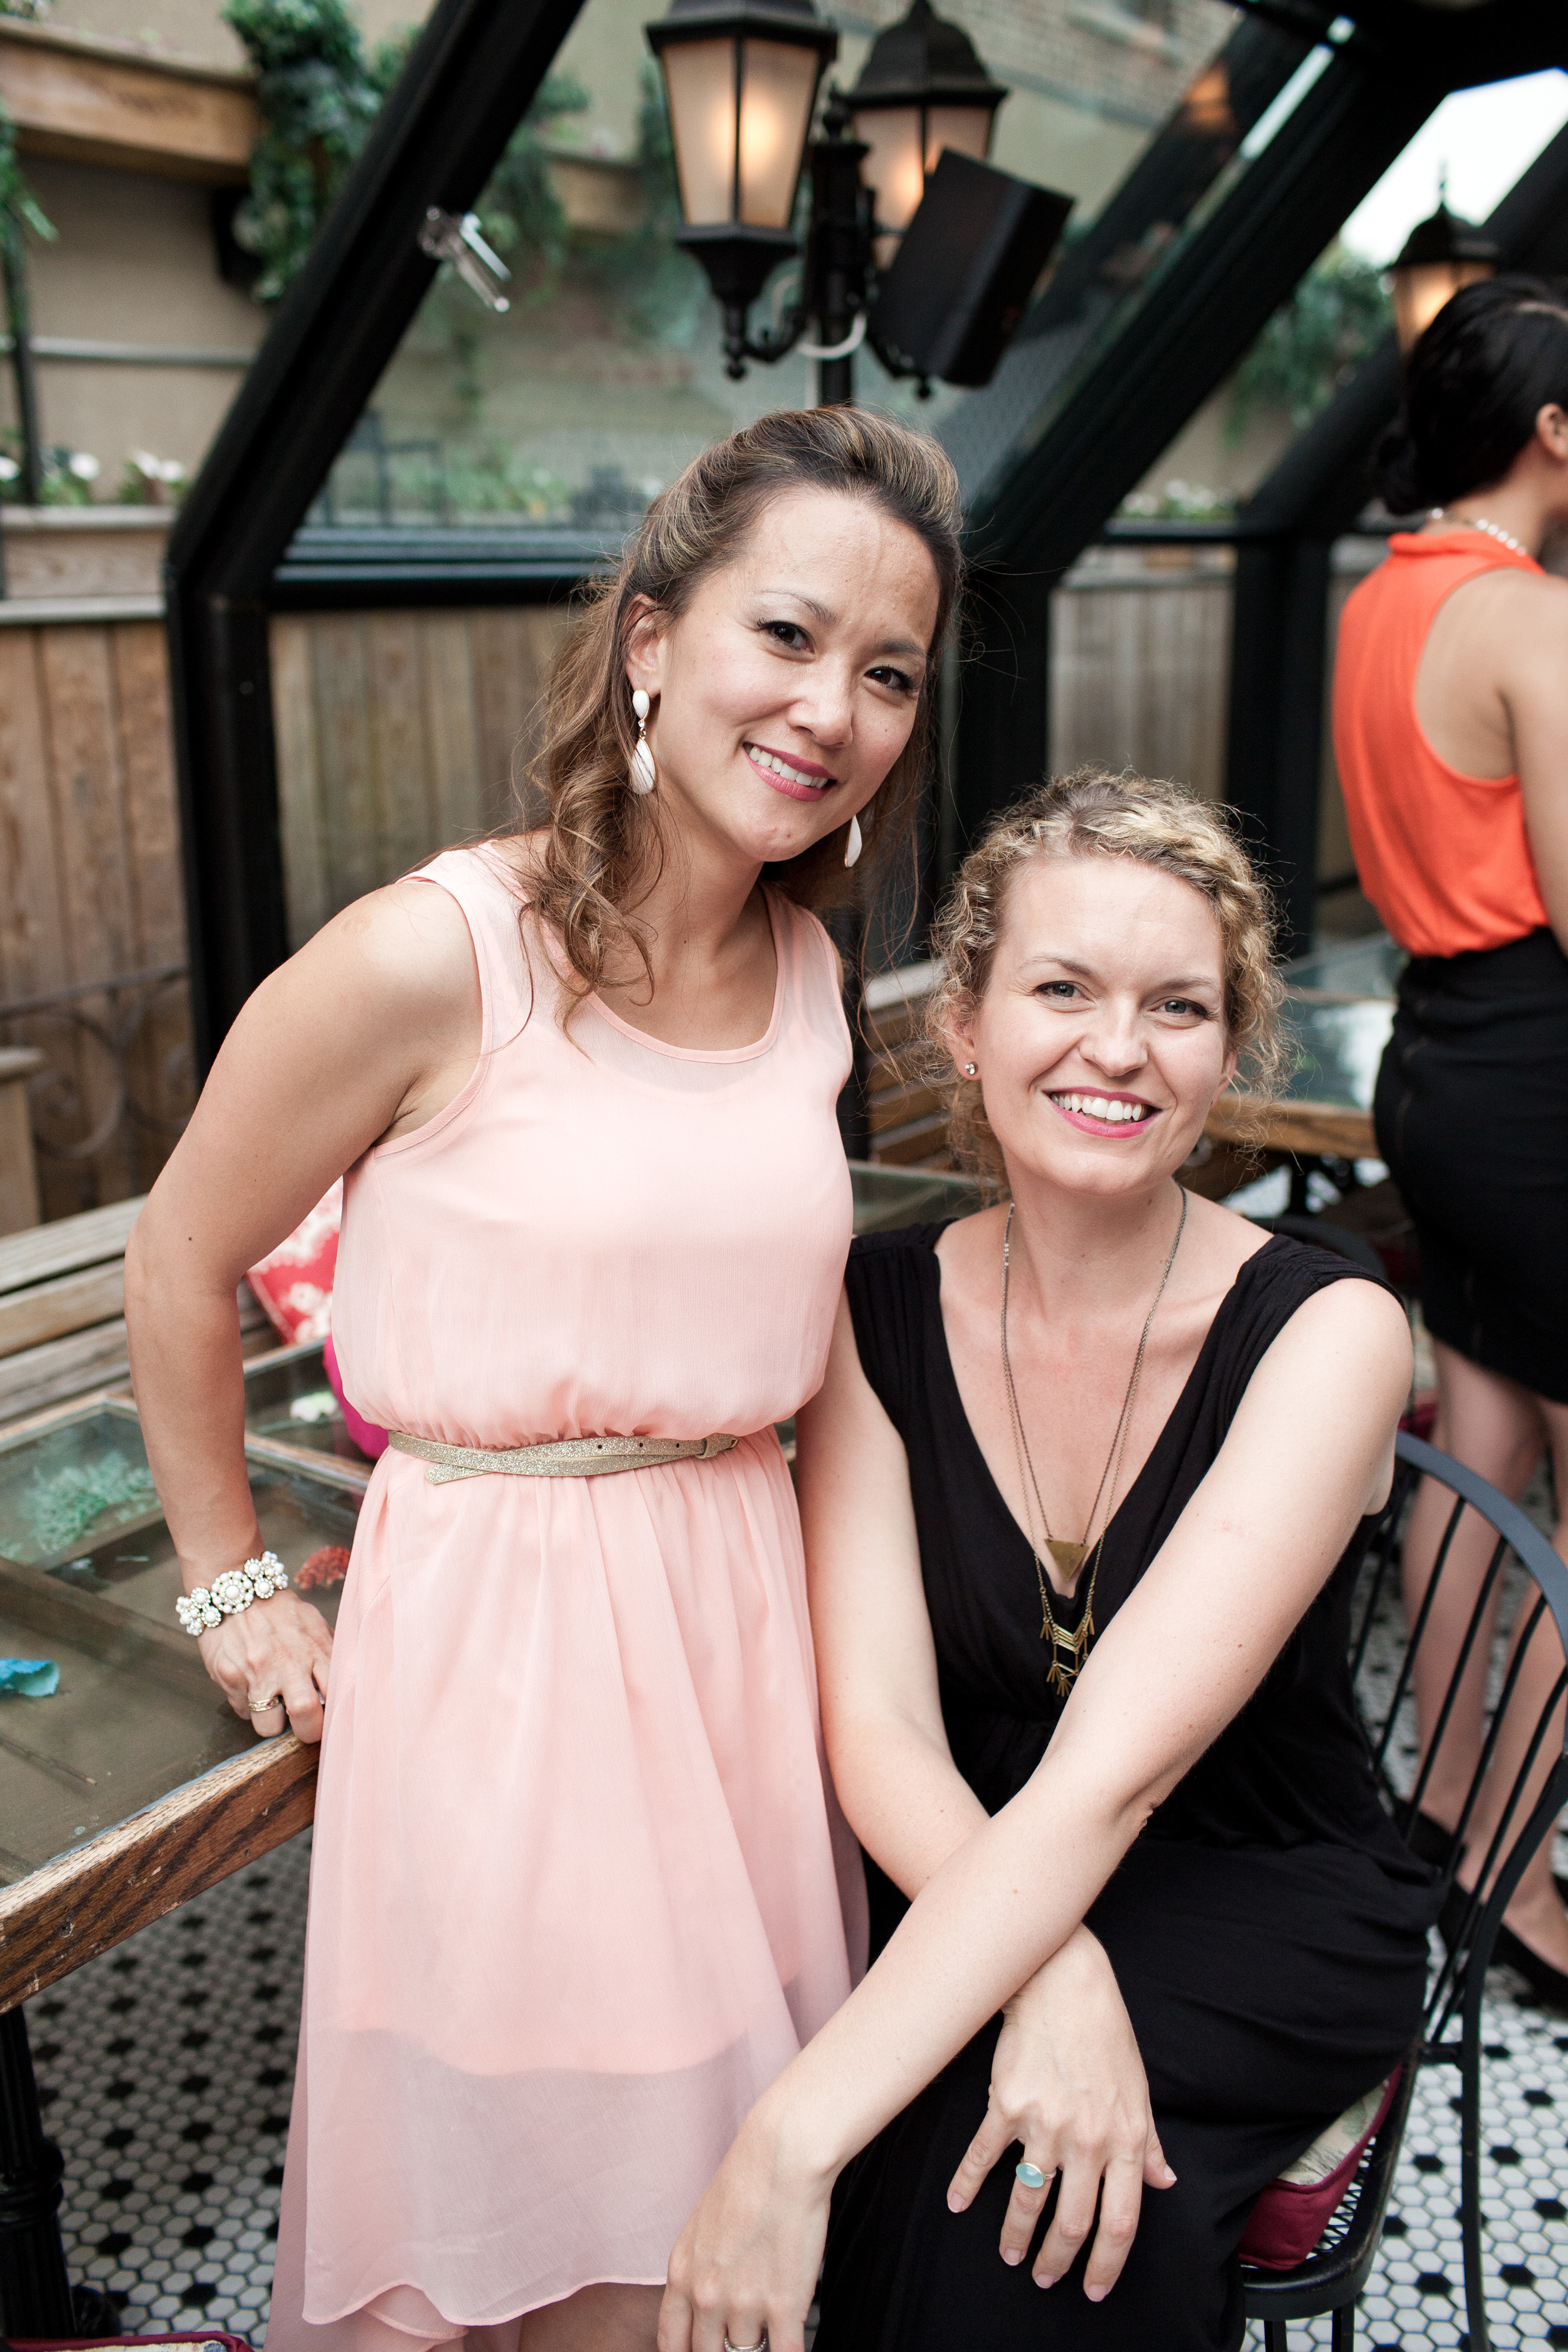 Meena and Rebecca looking so radiant!